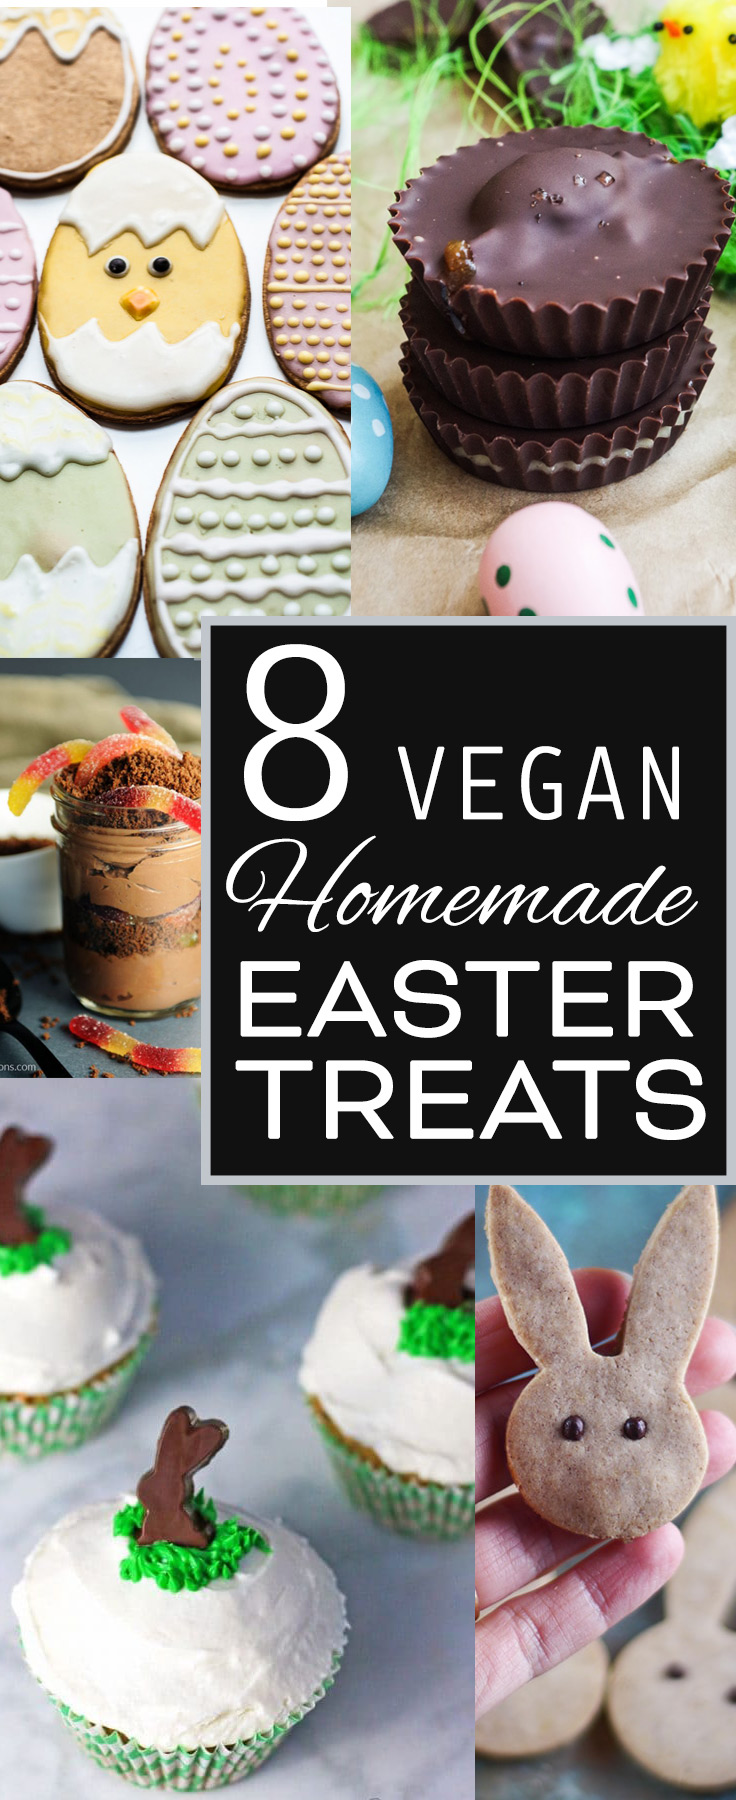 8 Vegan Treat Gifts for Easter & Other Spring Celebrations, Collected by Beautiful Ingredient. #eastertreats #easter #bunny #rabbit #easterdesserts #veganeaster #veganeasterrecipes #eastergifts #eastervegan #veganeastergifts #homemadeveganeaster